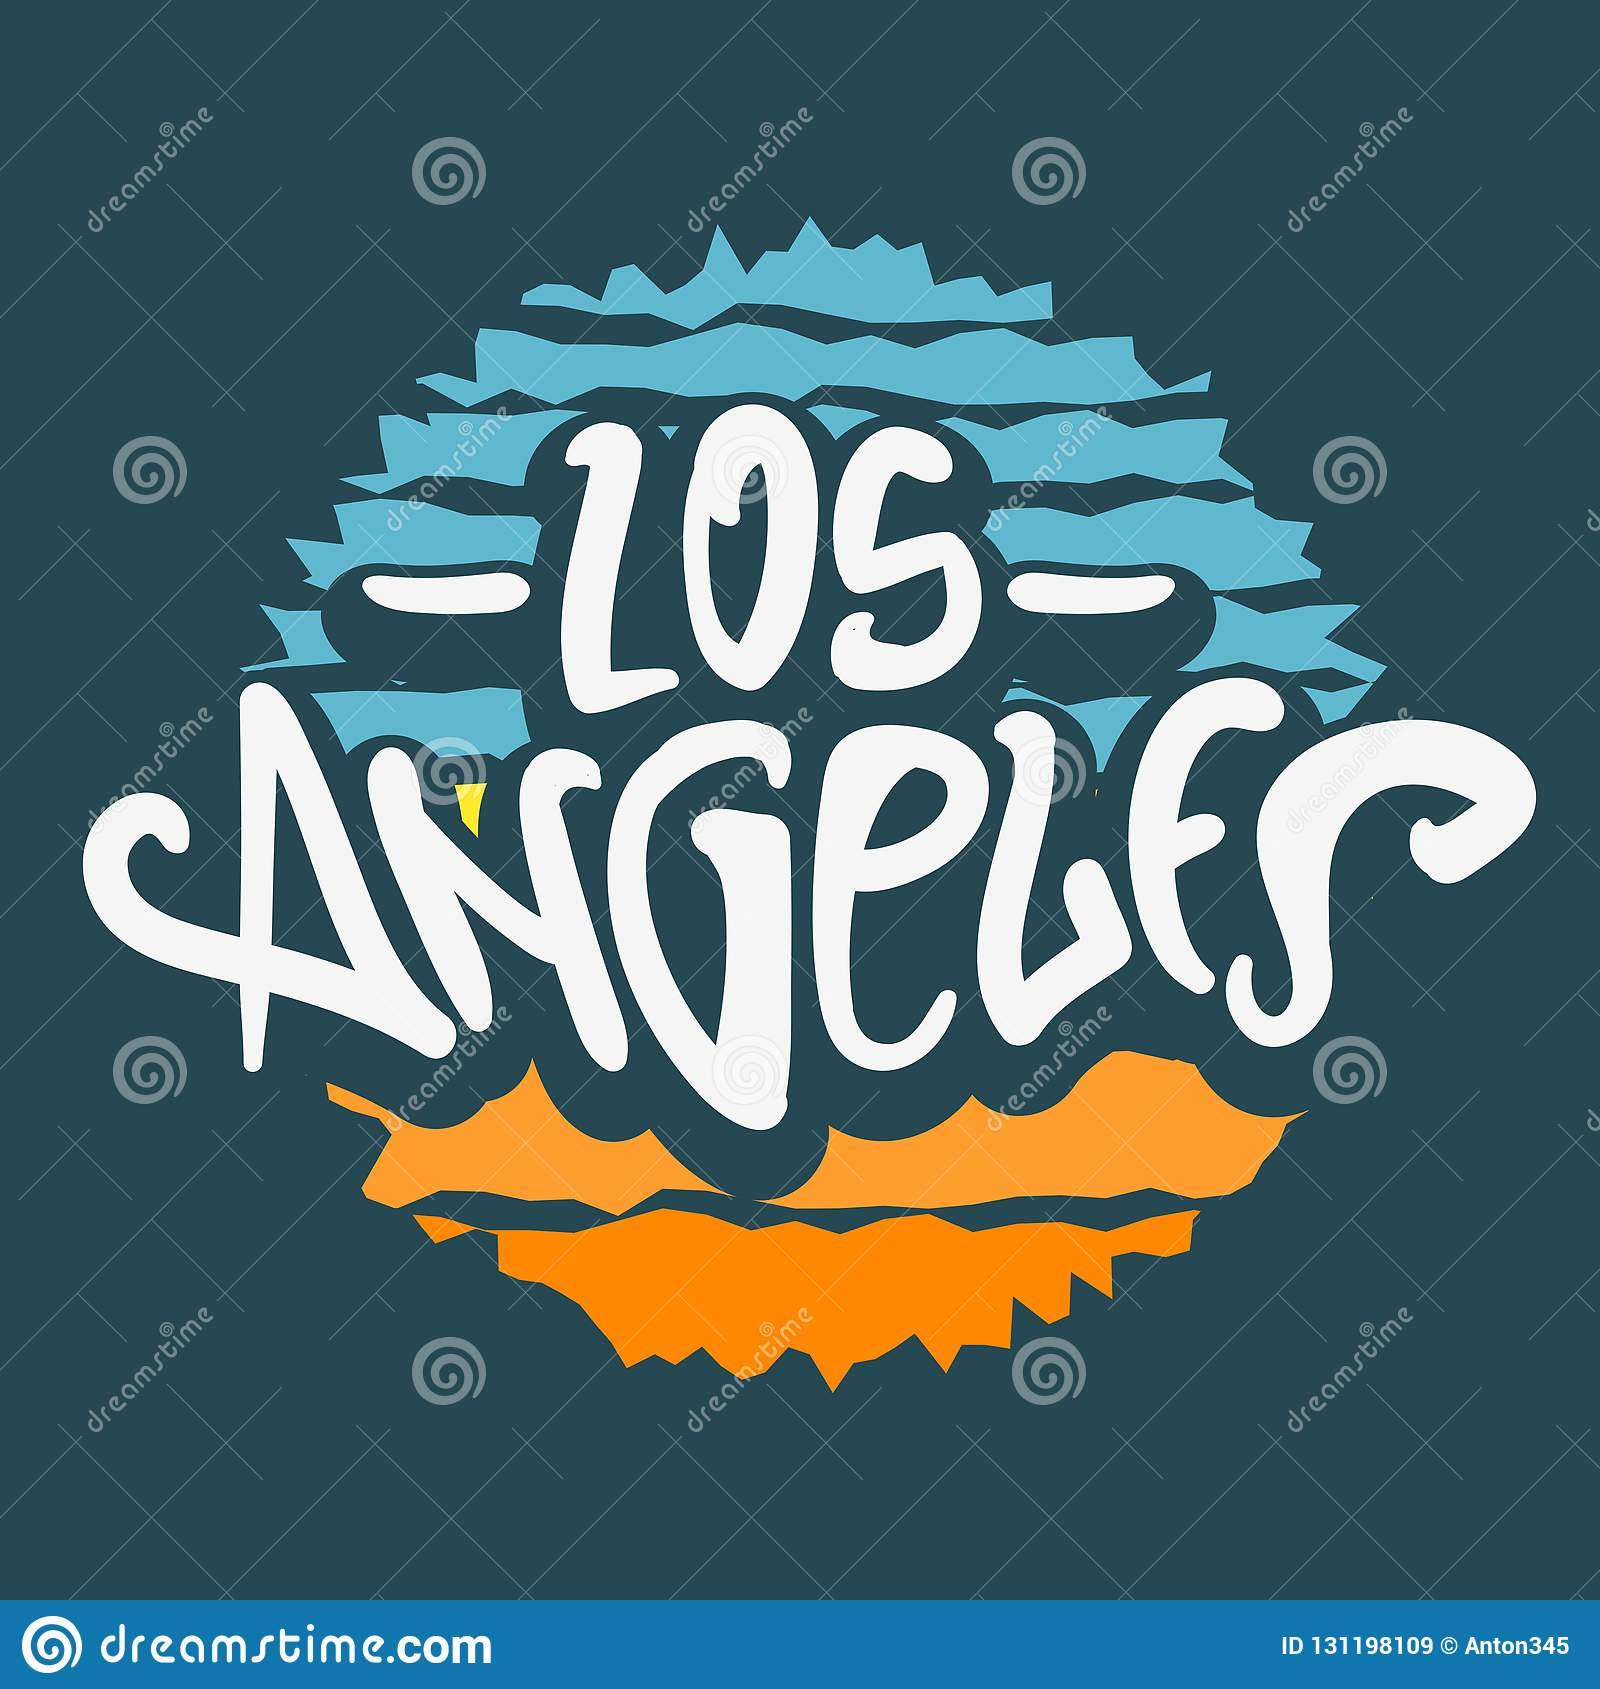 Los Angeles California Label Sign Logo Hand Drawn Lettering Modern Calligraphy For T Shirt Or Sticker Vector Image Stock Vector Illustration Of Season Destination 131198109,Clash Of Clans Builder Hall 4 Base Design